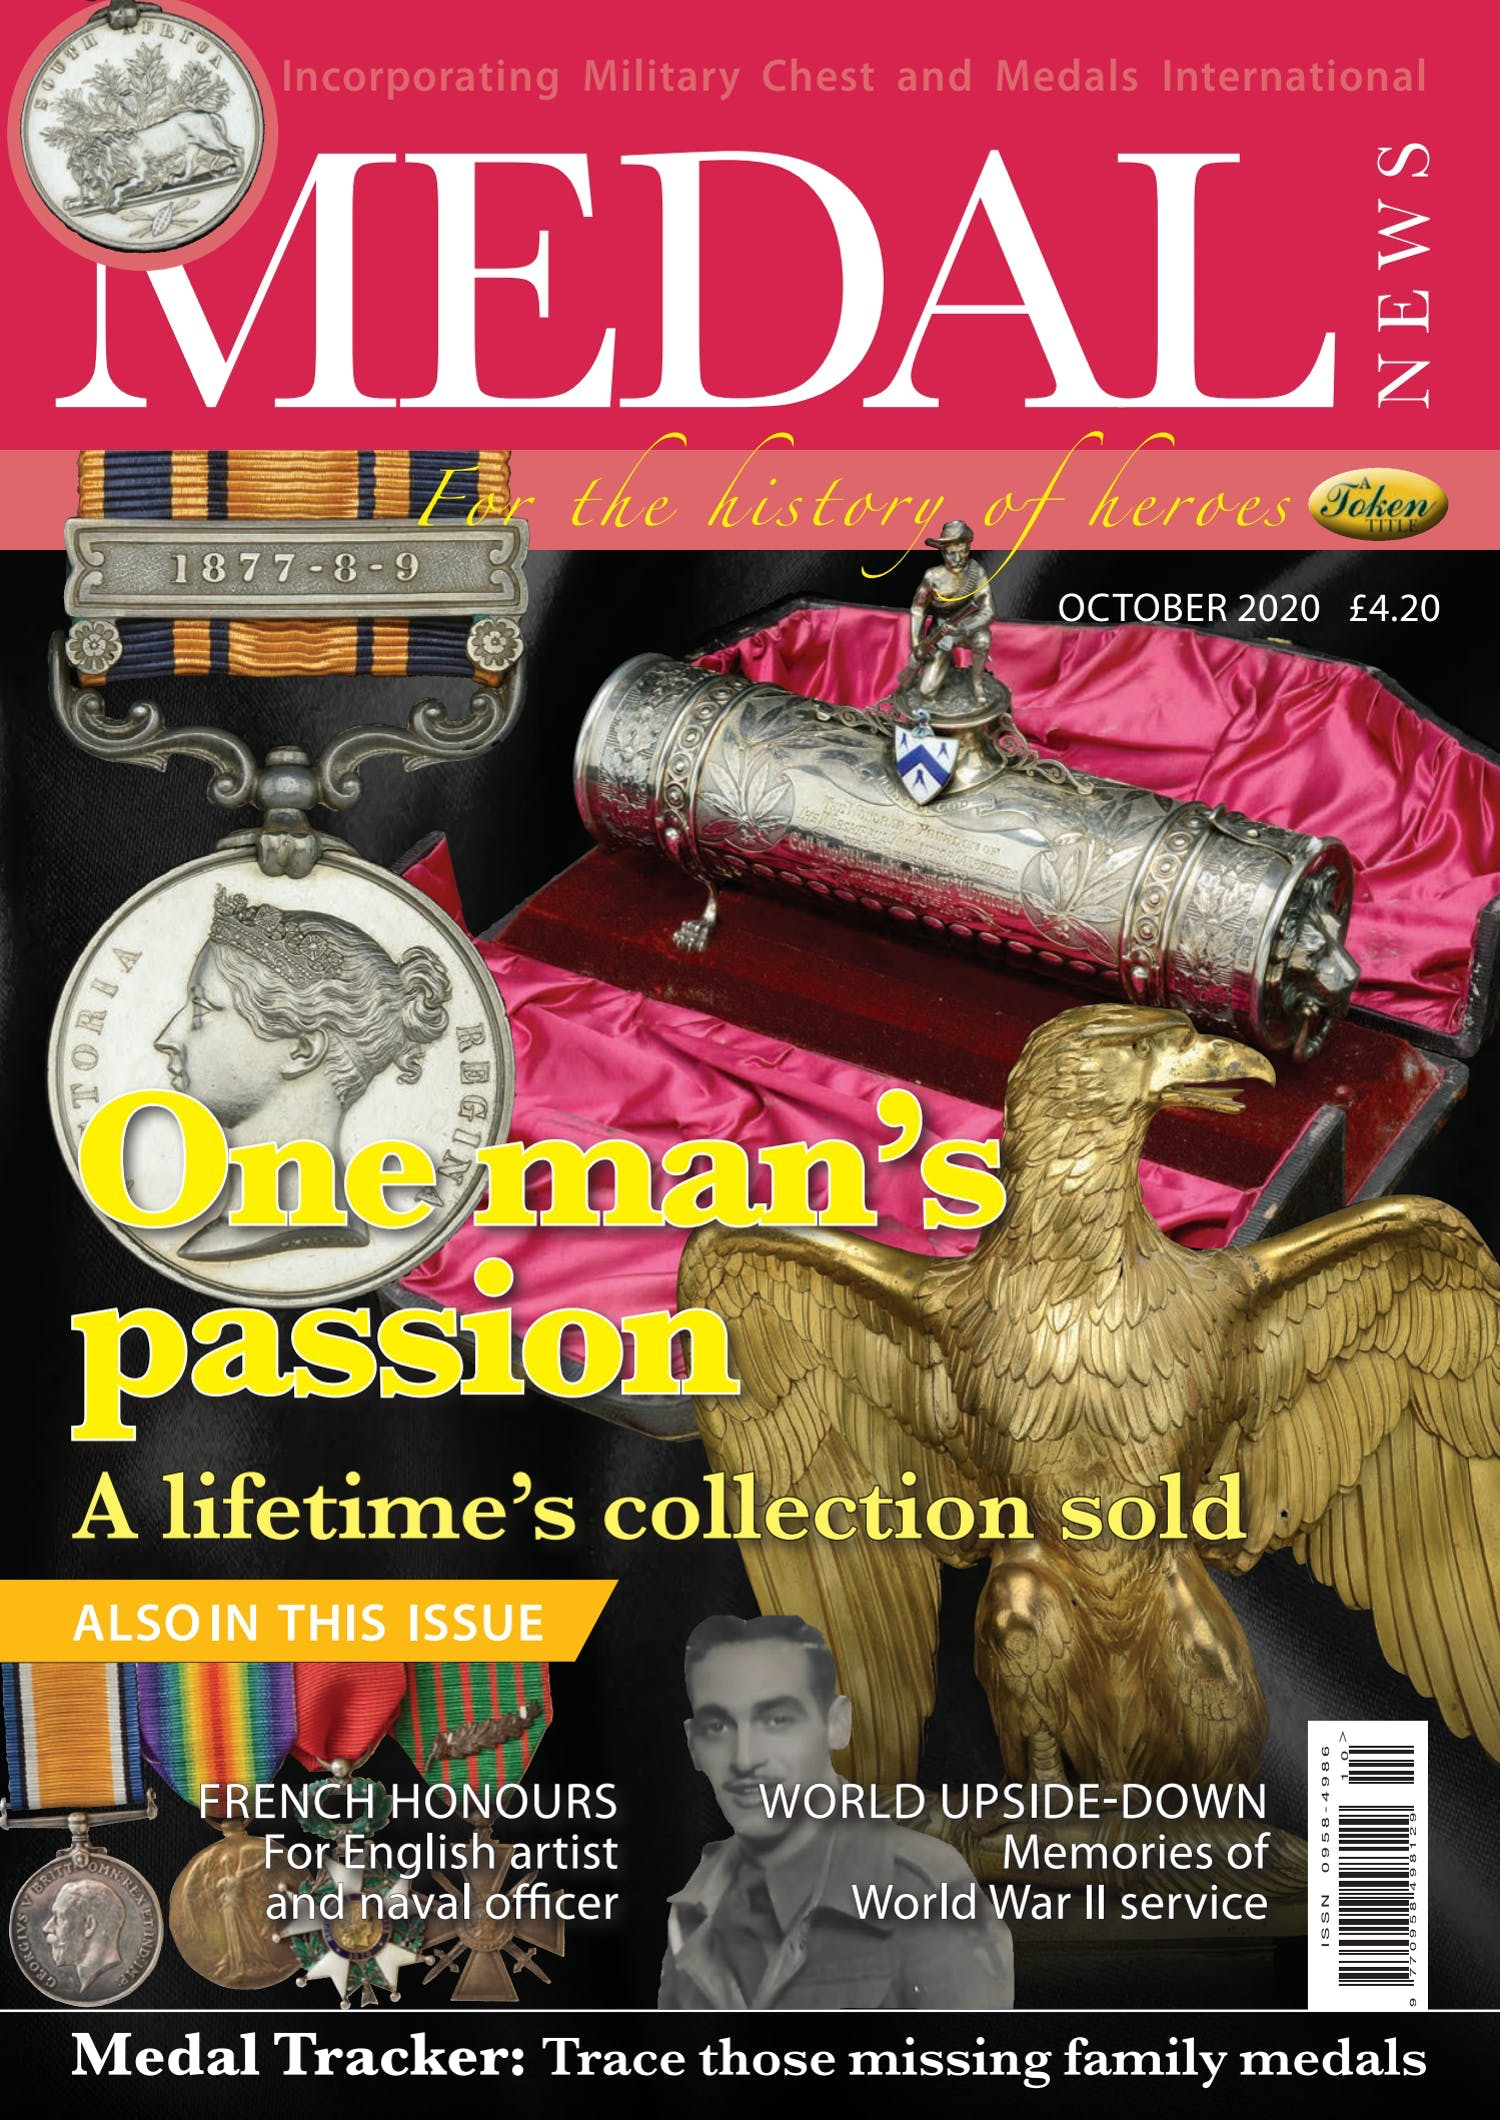 Front cover of 'One man's passion', Medal News October 2020, Volume 58, Number 9 by Token Publishing